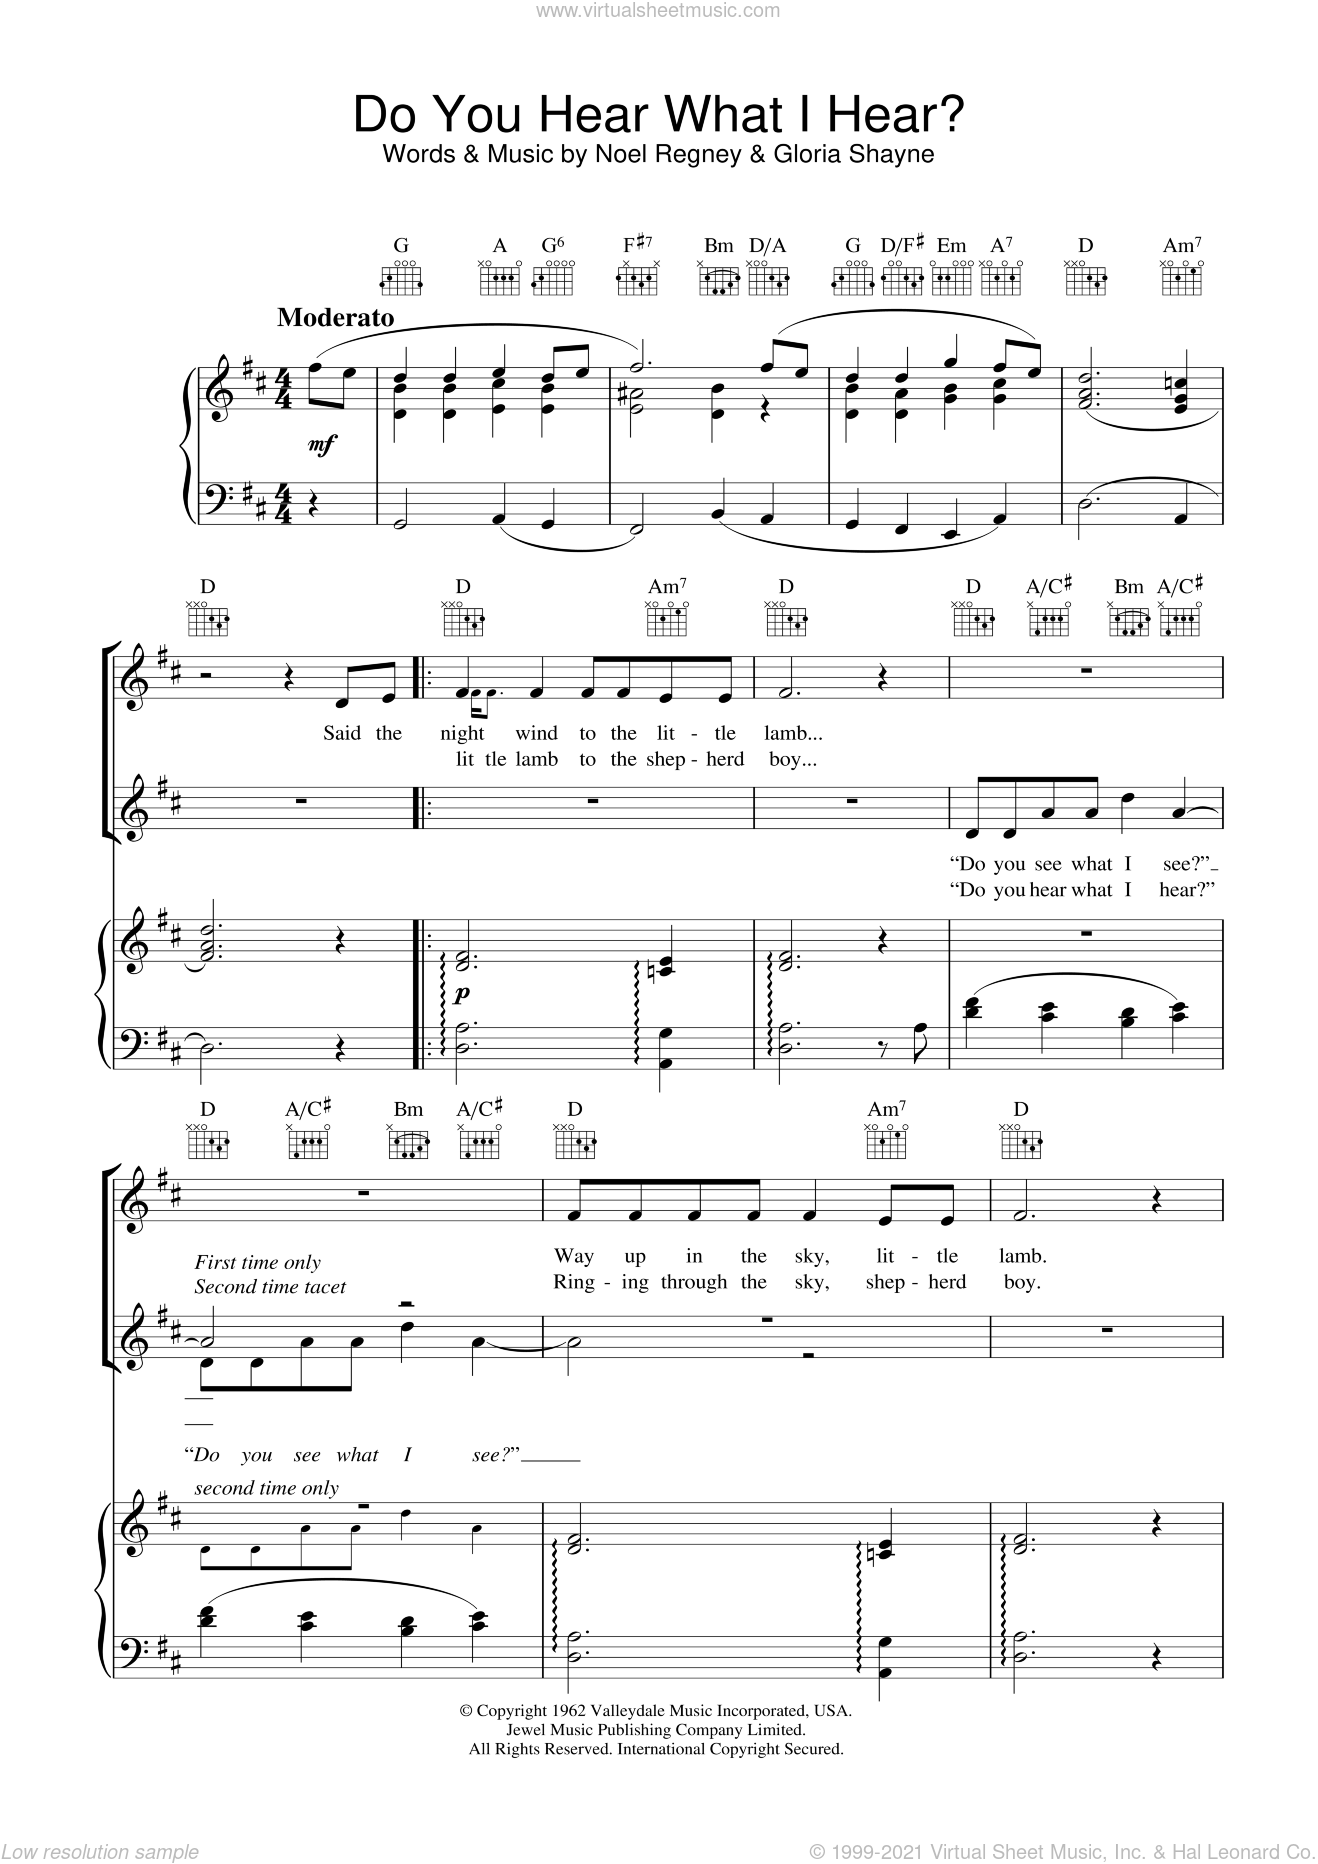 Do You Hear What I Hear sheet music for voice, piano or guitar by Noel Regney